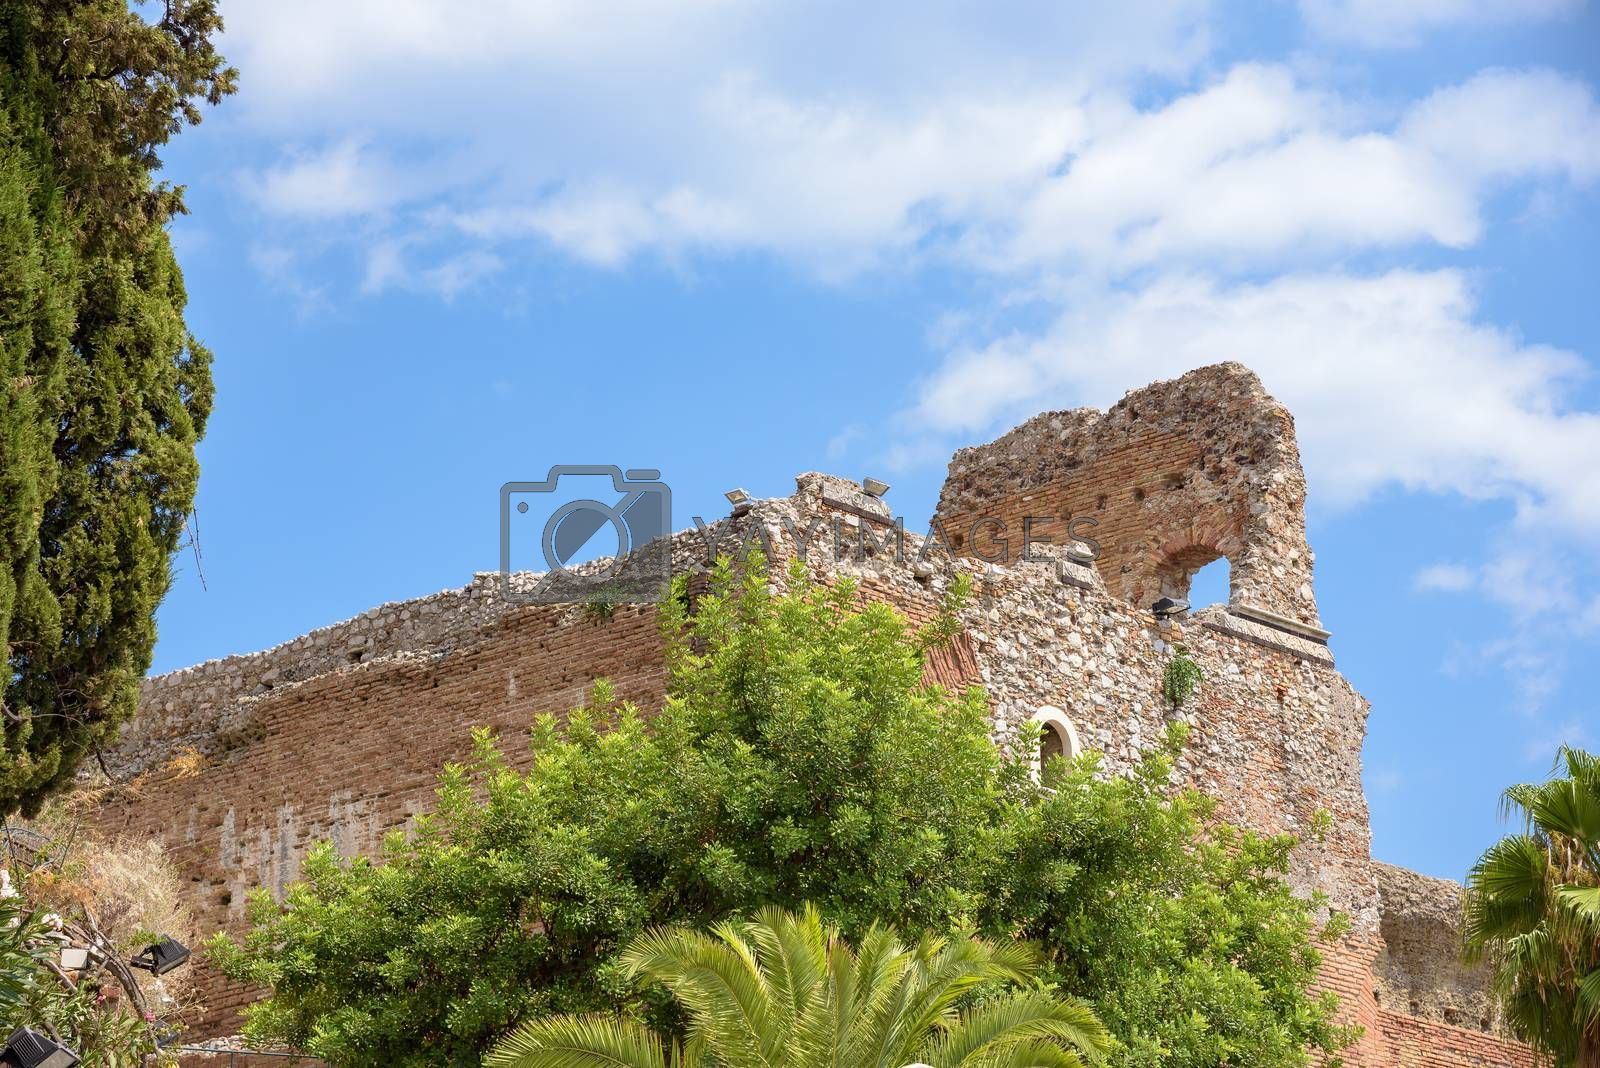 Ruins of the ancient theater in Taormina, Sicily, Italy